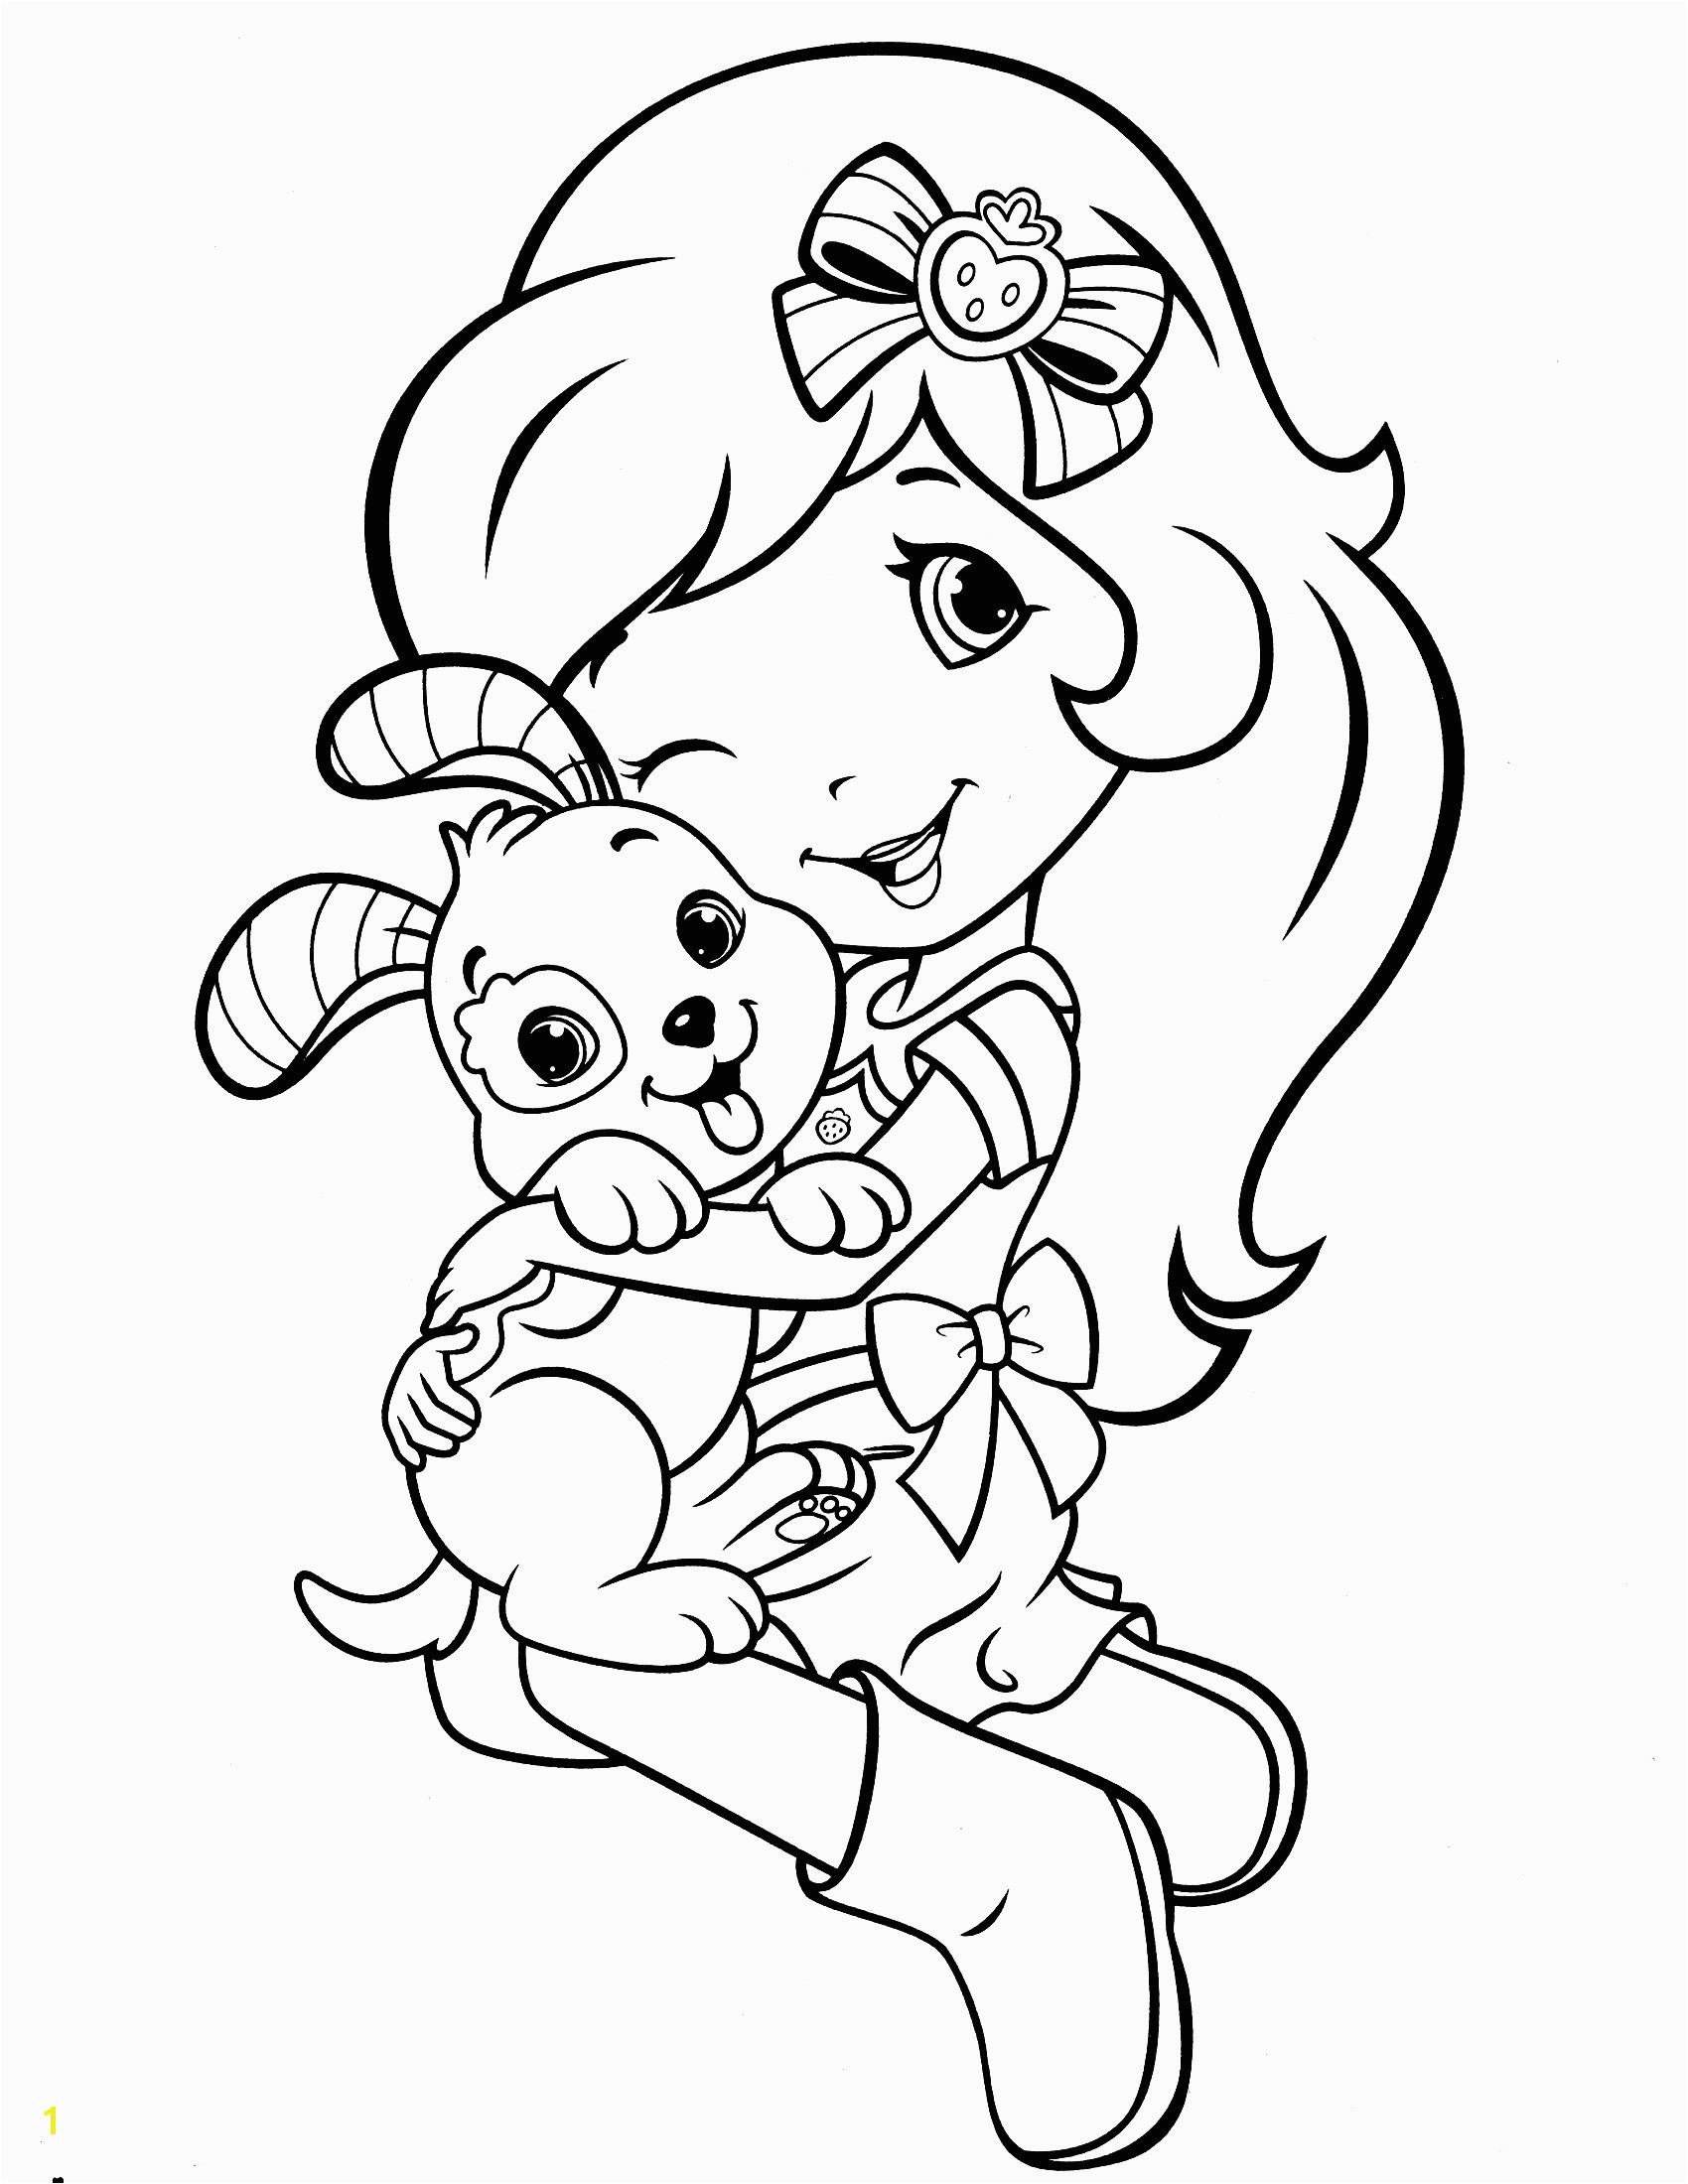 Strawberry Shortcake Doll Coloring Pages Strawberry Shortcake Coloring Pages Lovely Strawberry Coloring Page